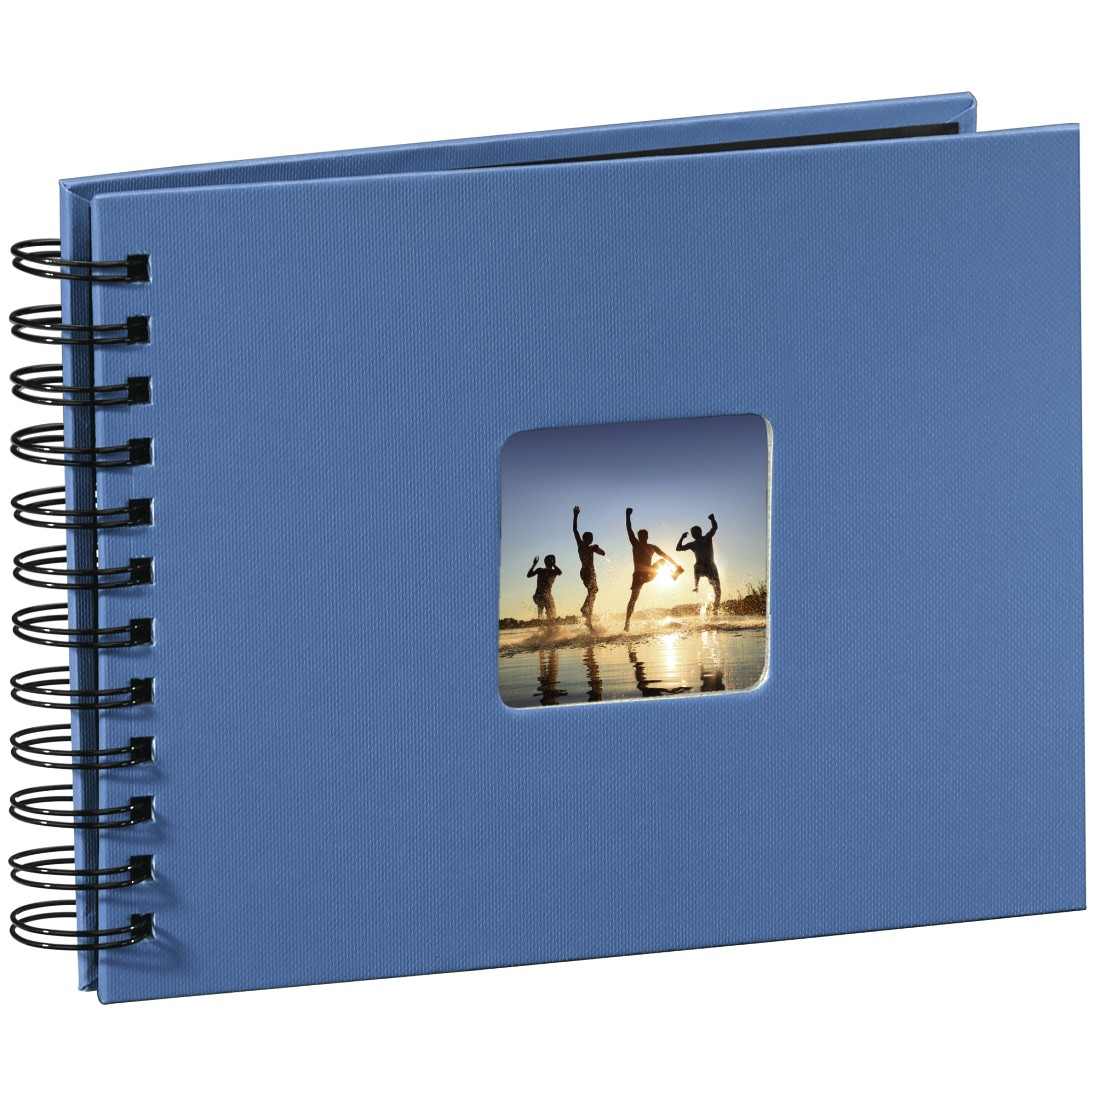 abx2 High-Res Image 2 - Hama, Fine Art Spiral Bound Album, 24 x 17 cm, 50 black pages, azure